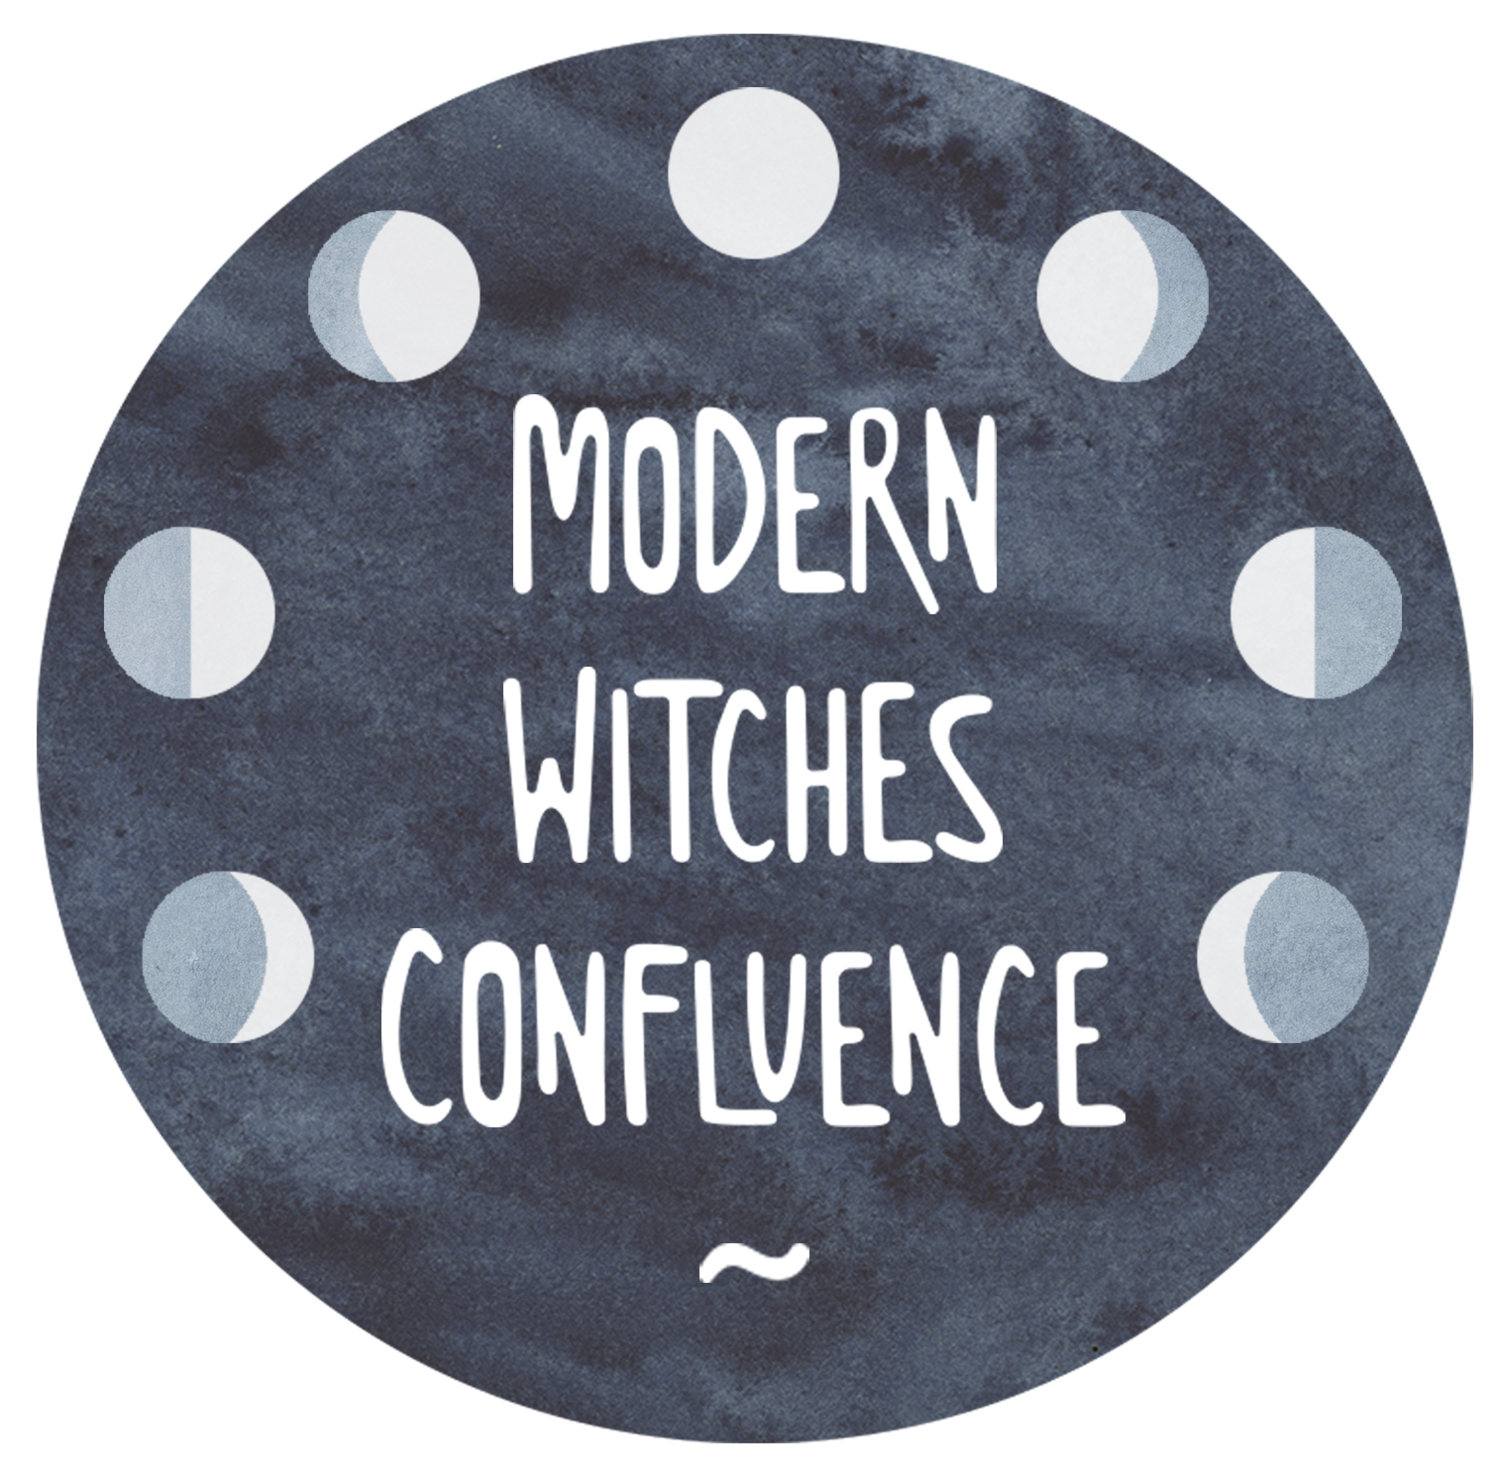 Modern Witches Confluence